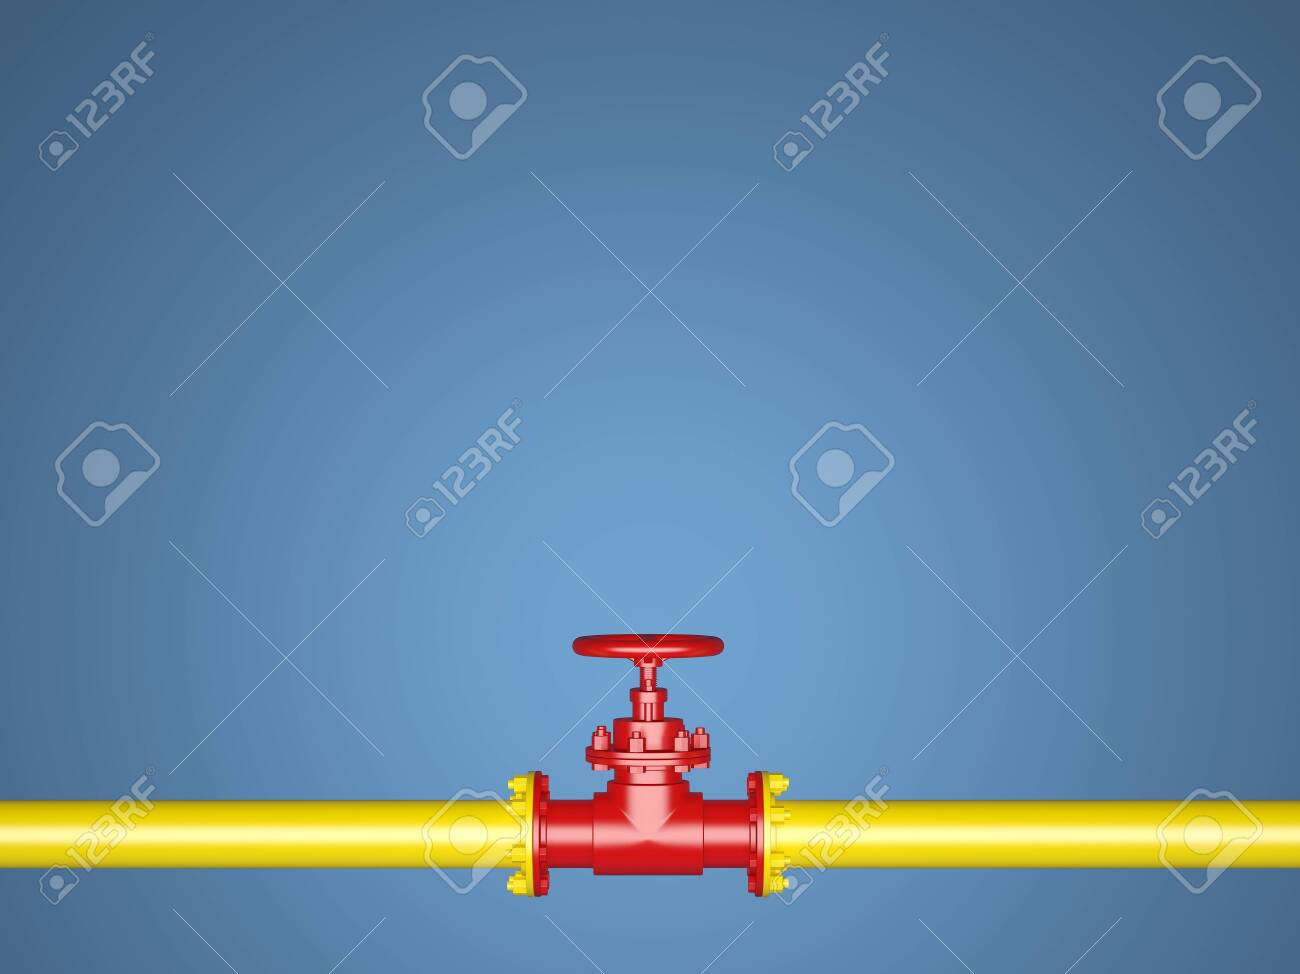 Yellow and red pipe on a blue background - 122112620